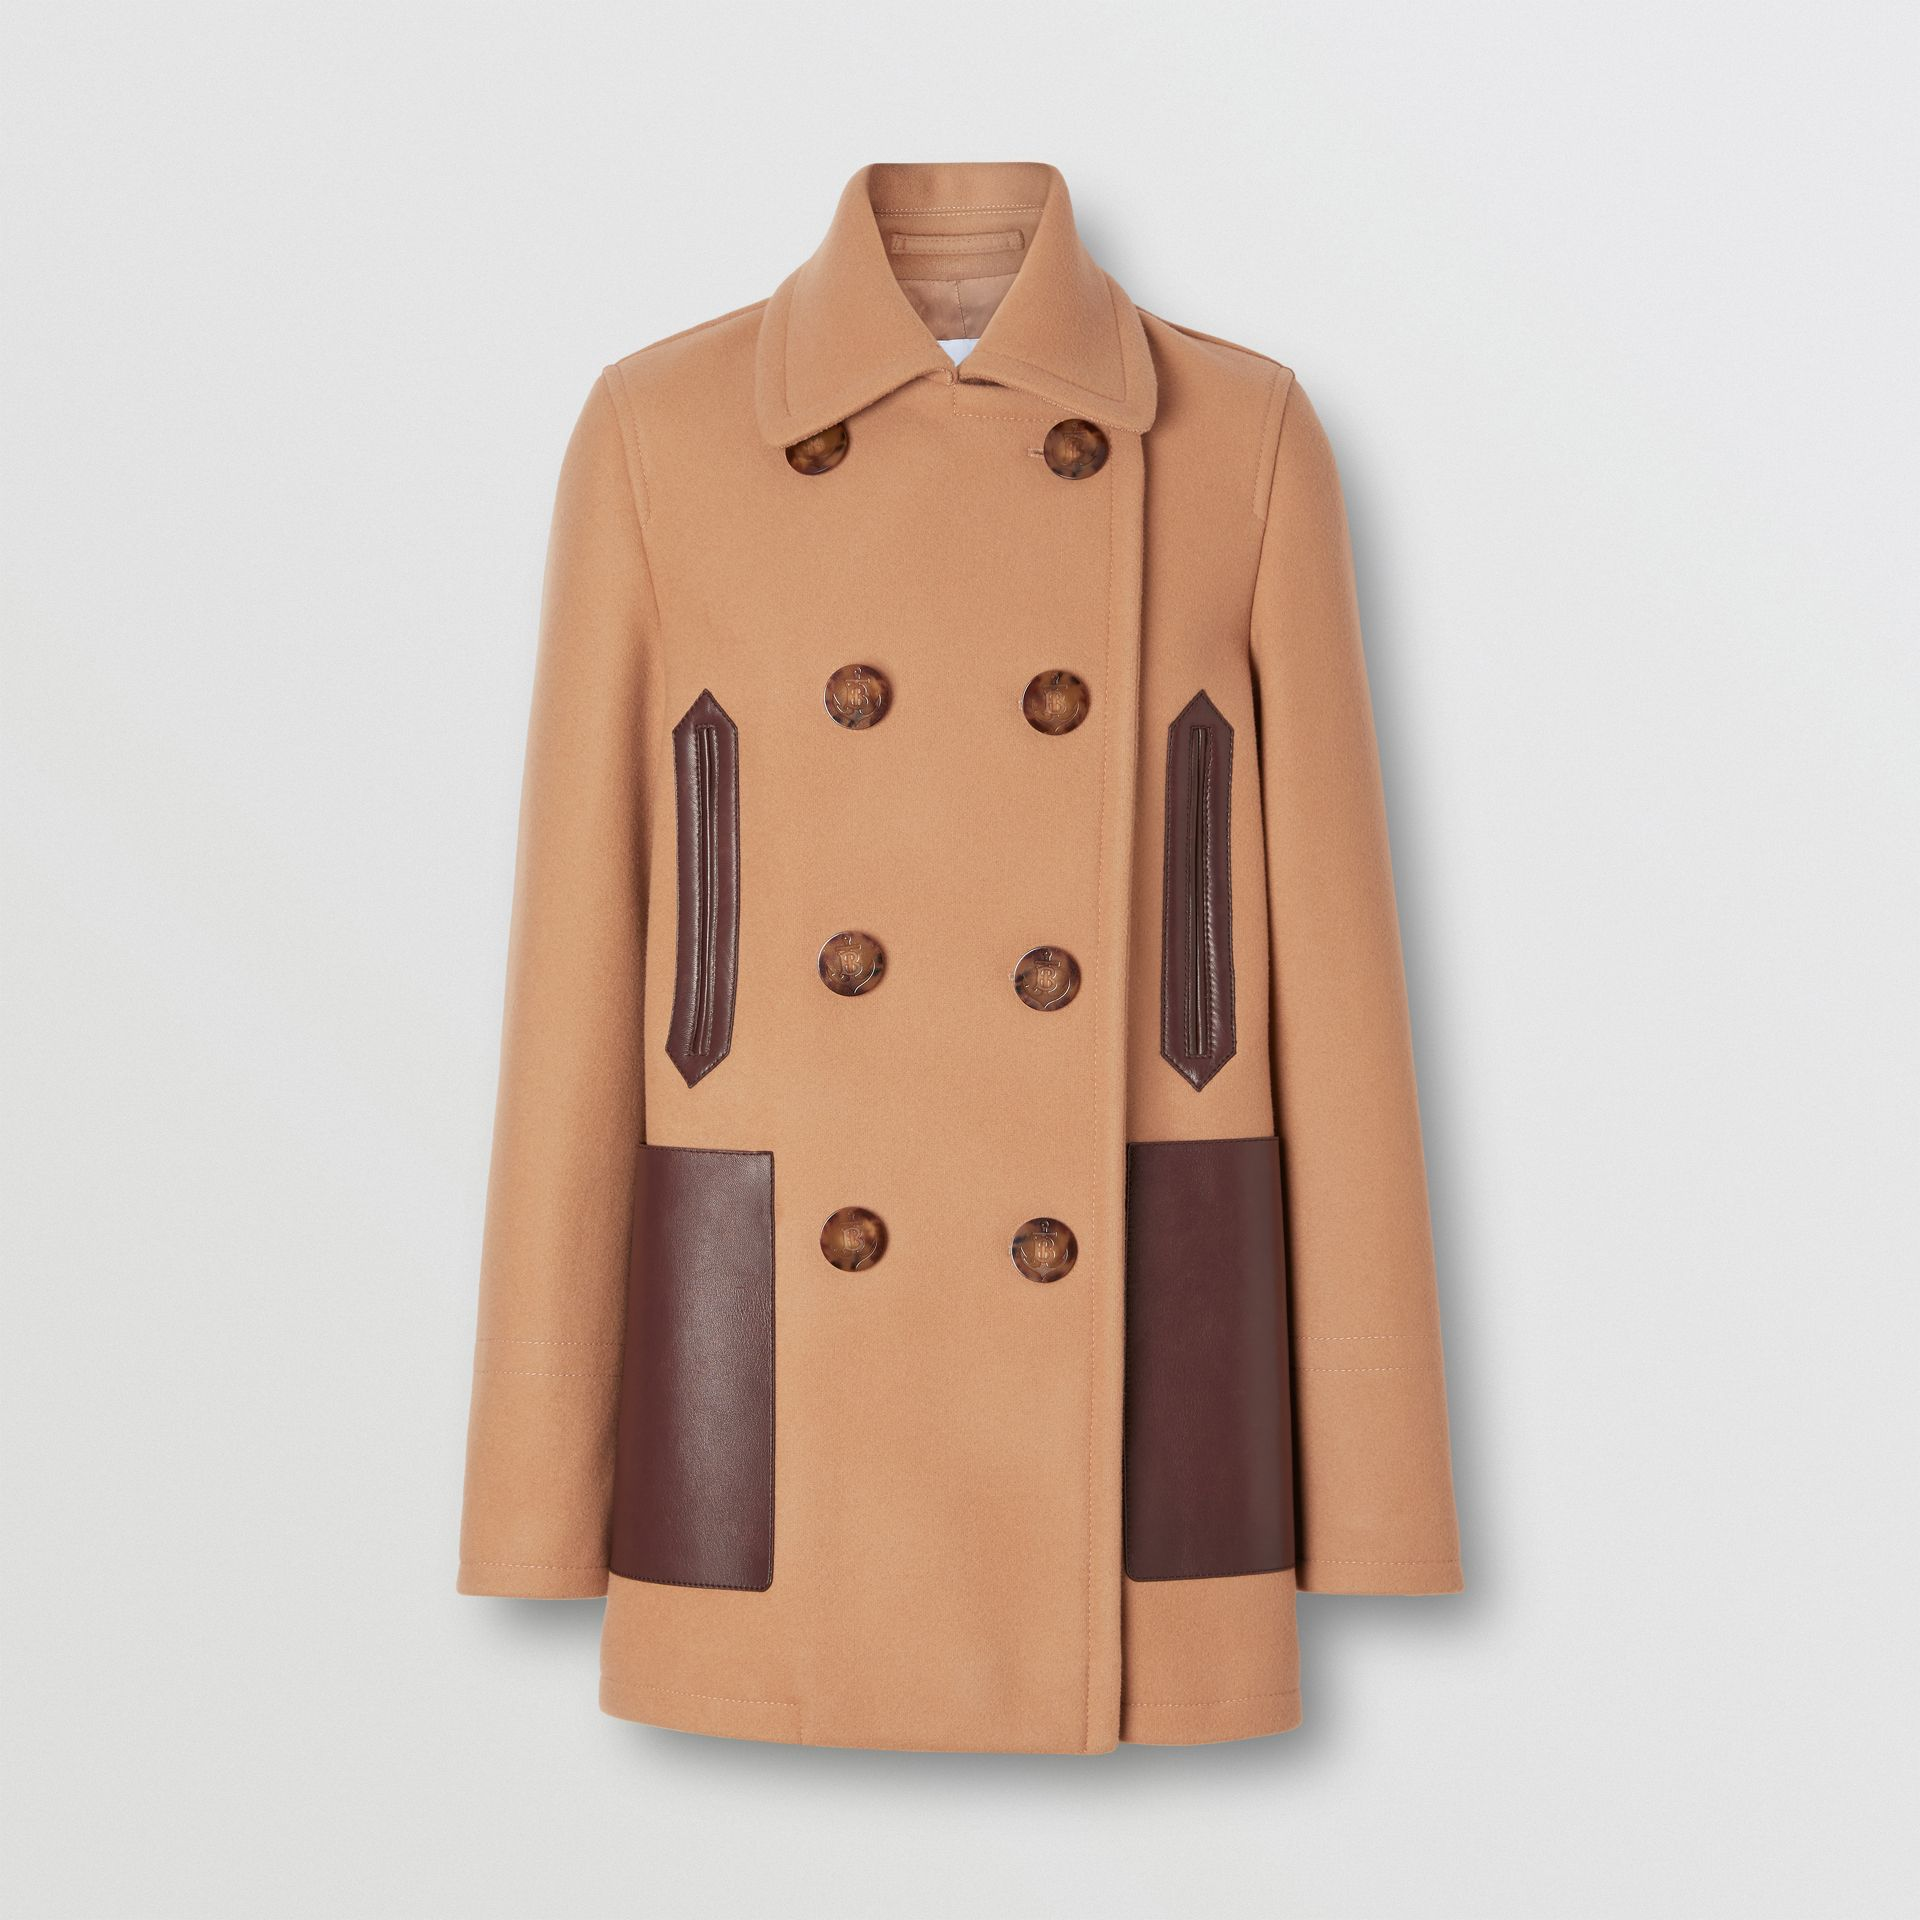 Lambskin Pocket Wool Blend Pea Coat in Camel - Women | Burberry United States - gallery image 3